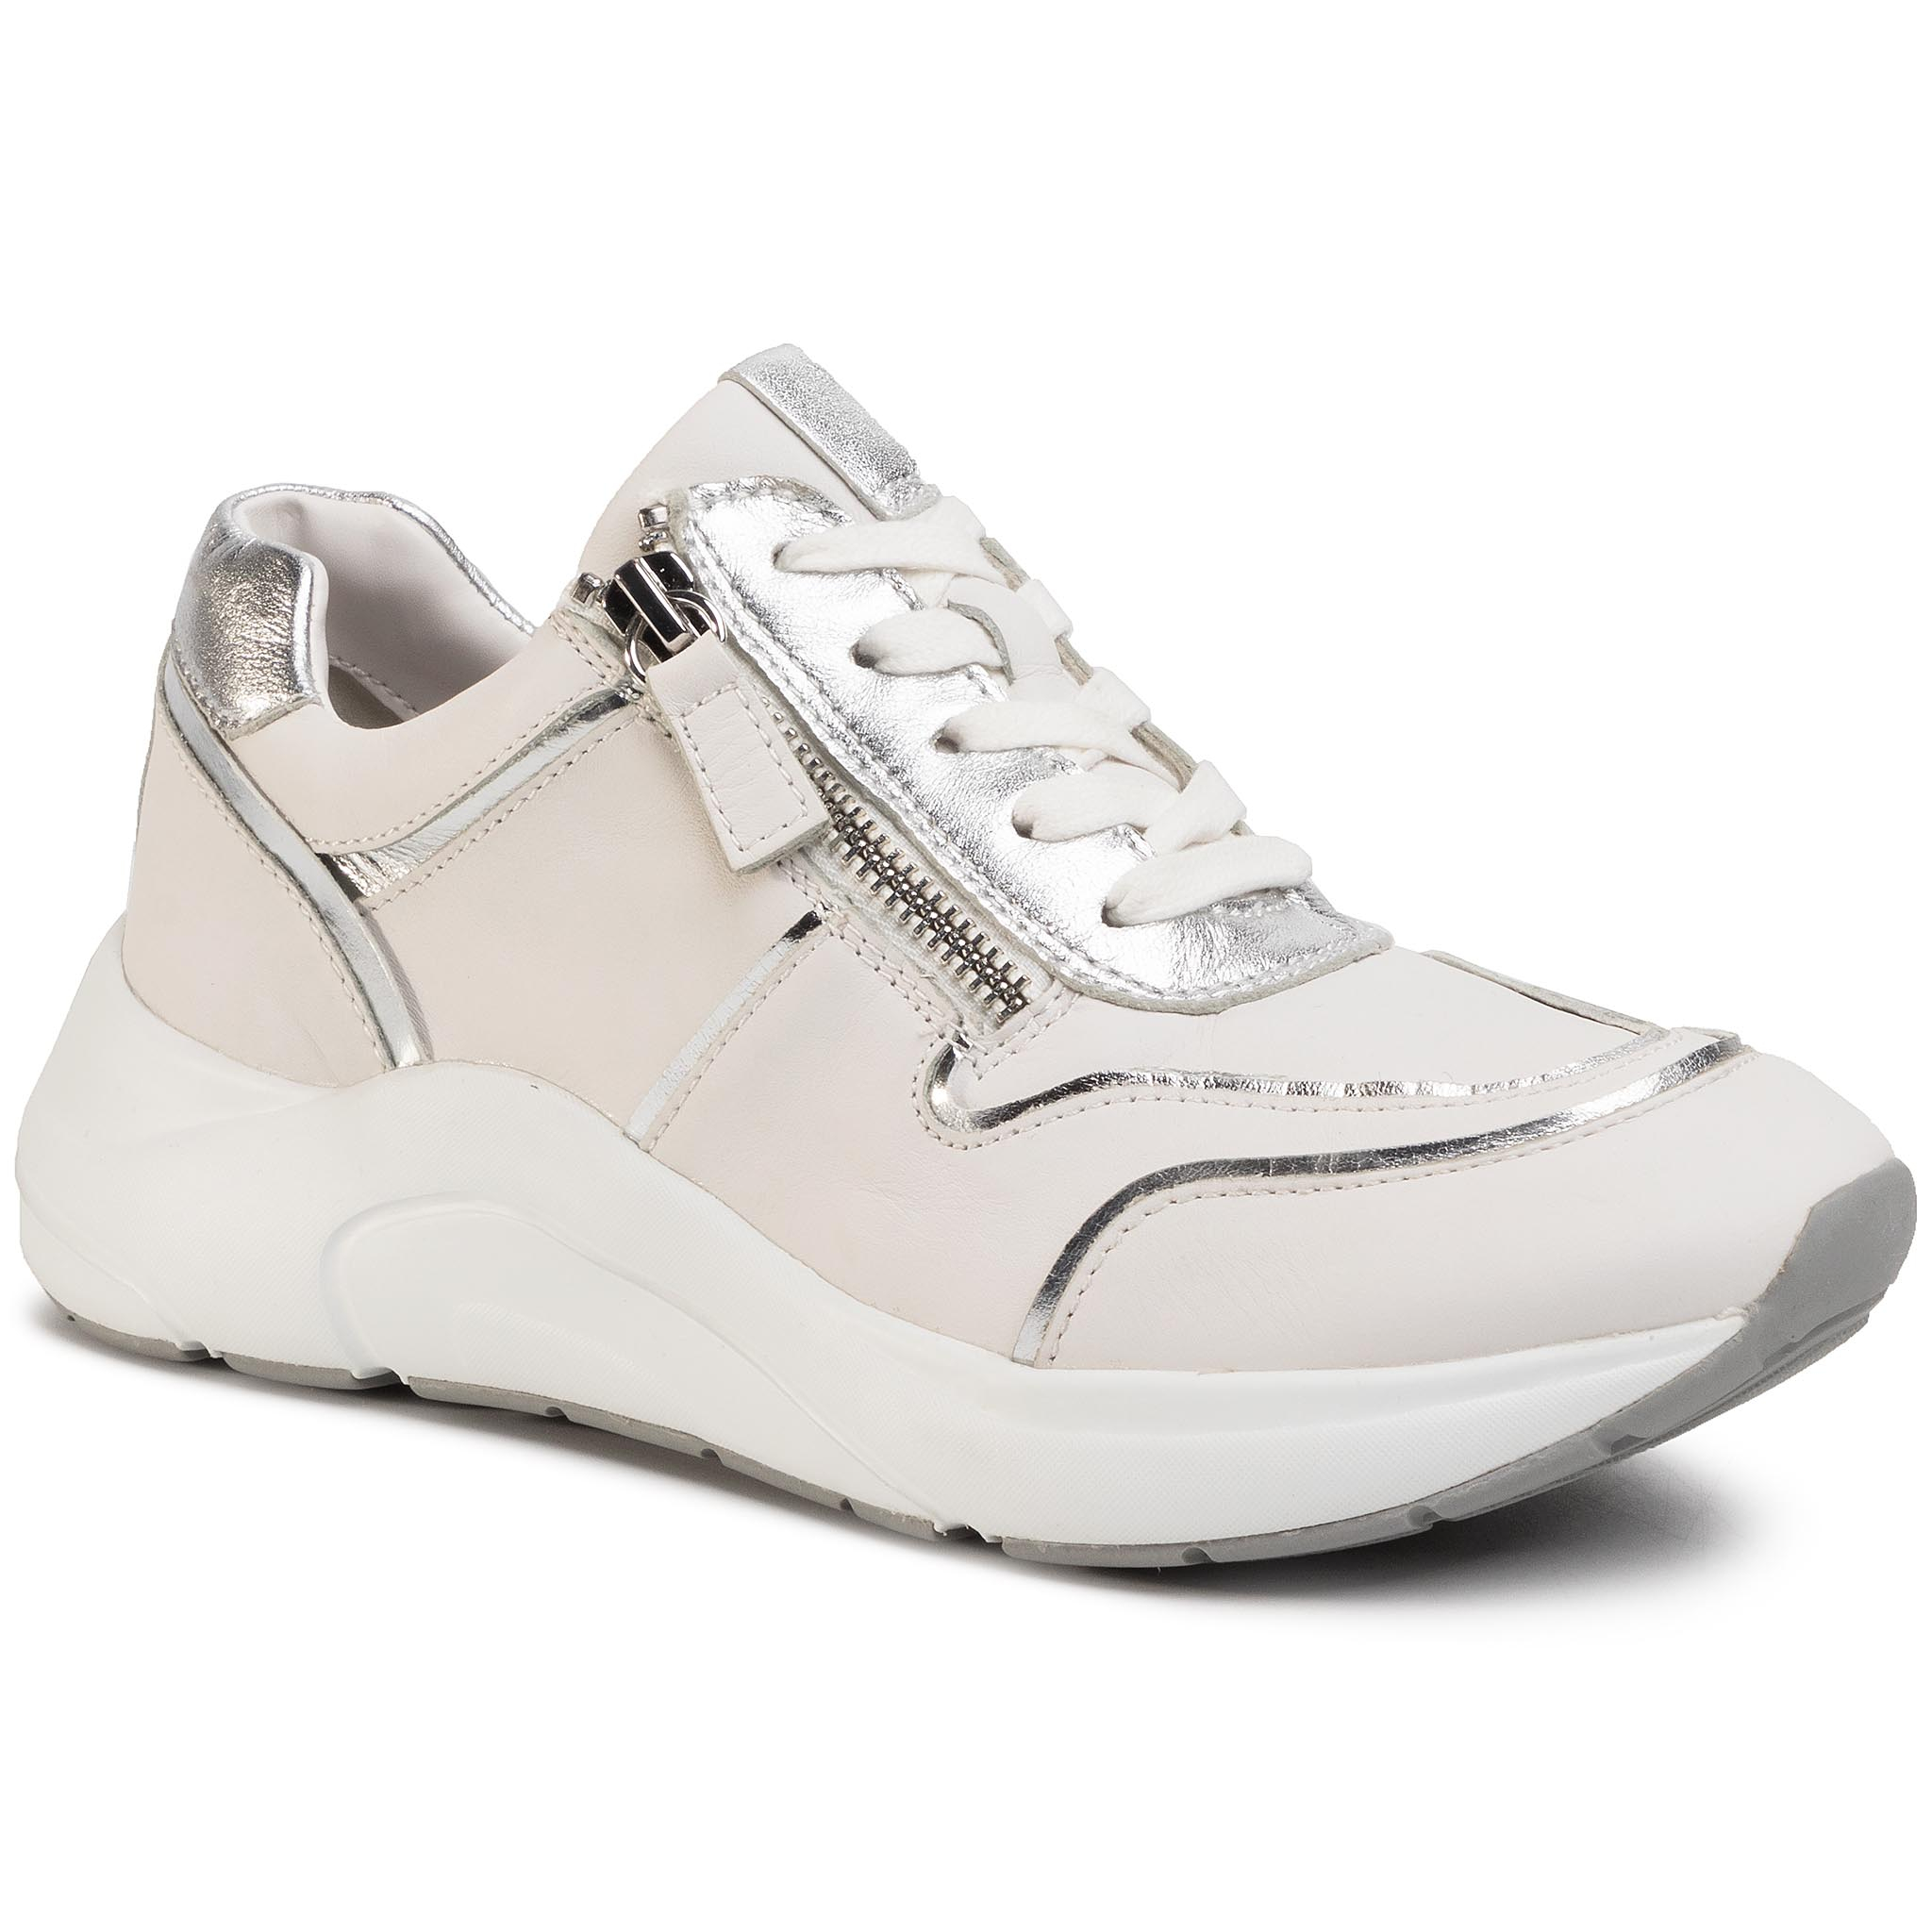 Sneakers CAPRICE - 9-23704-24 White/Silver 191